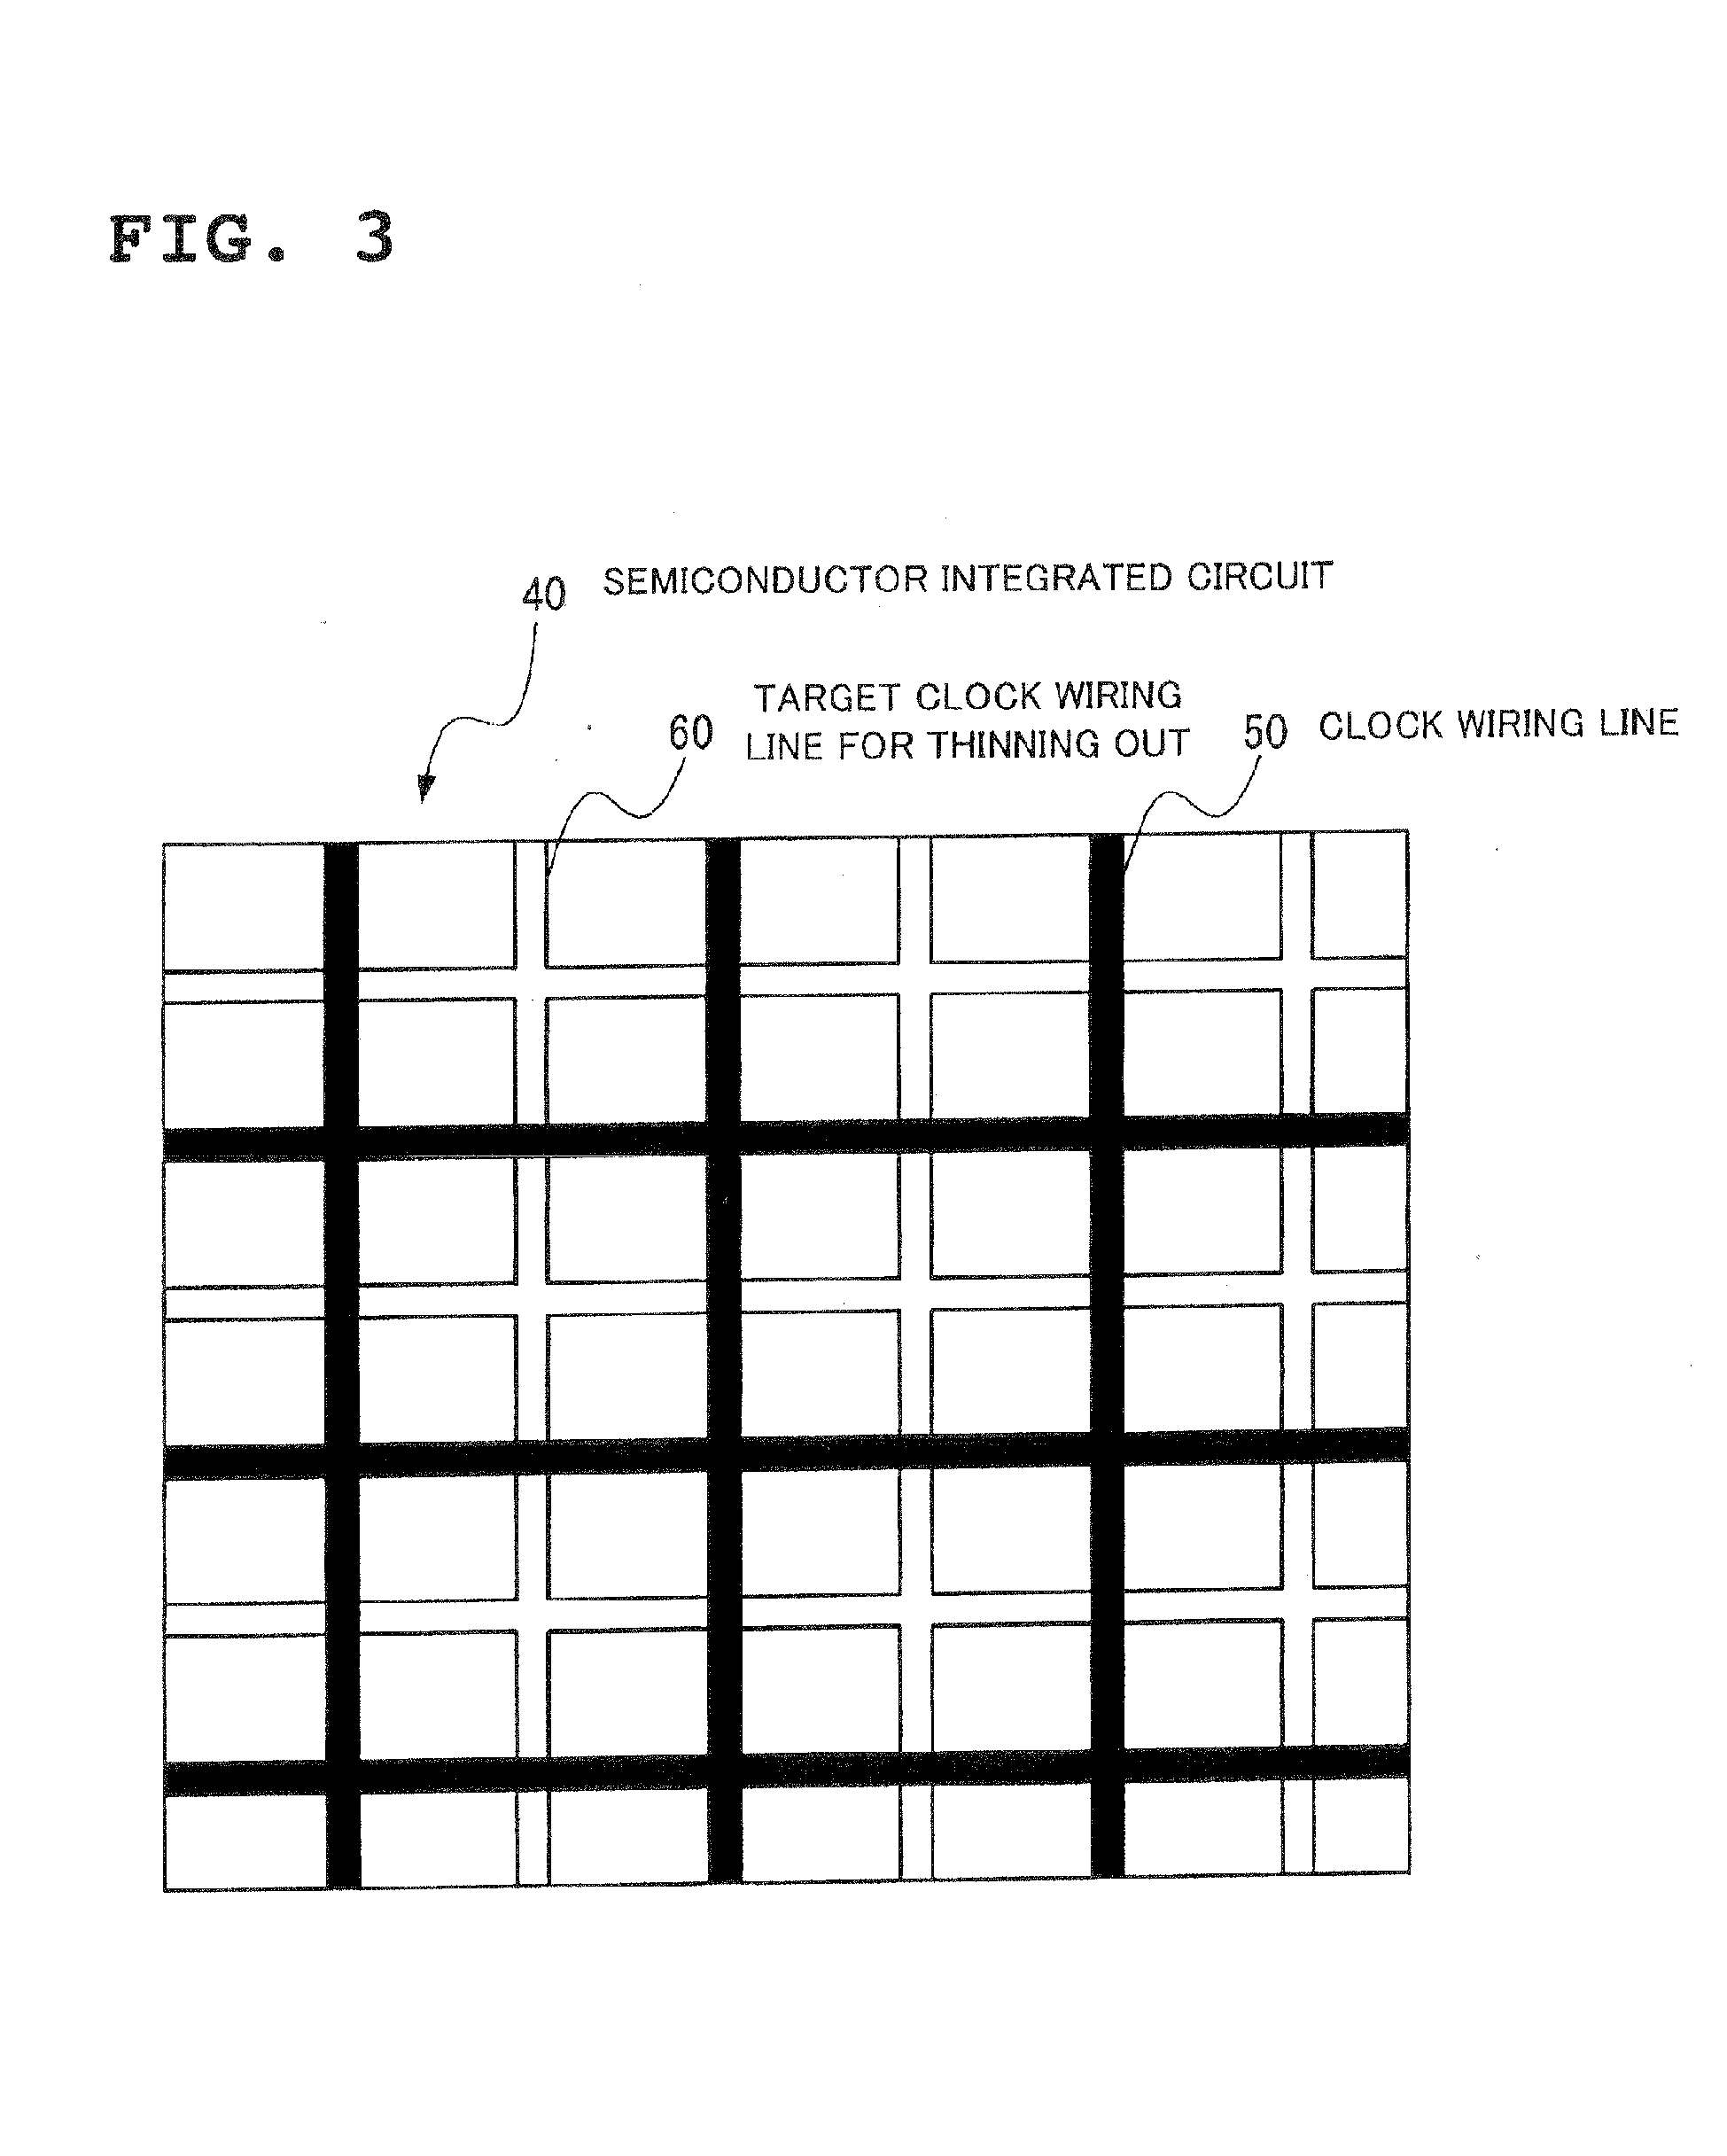 Wiring design system of semiconductor integrated circuit